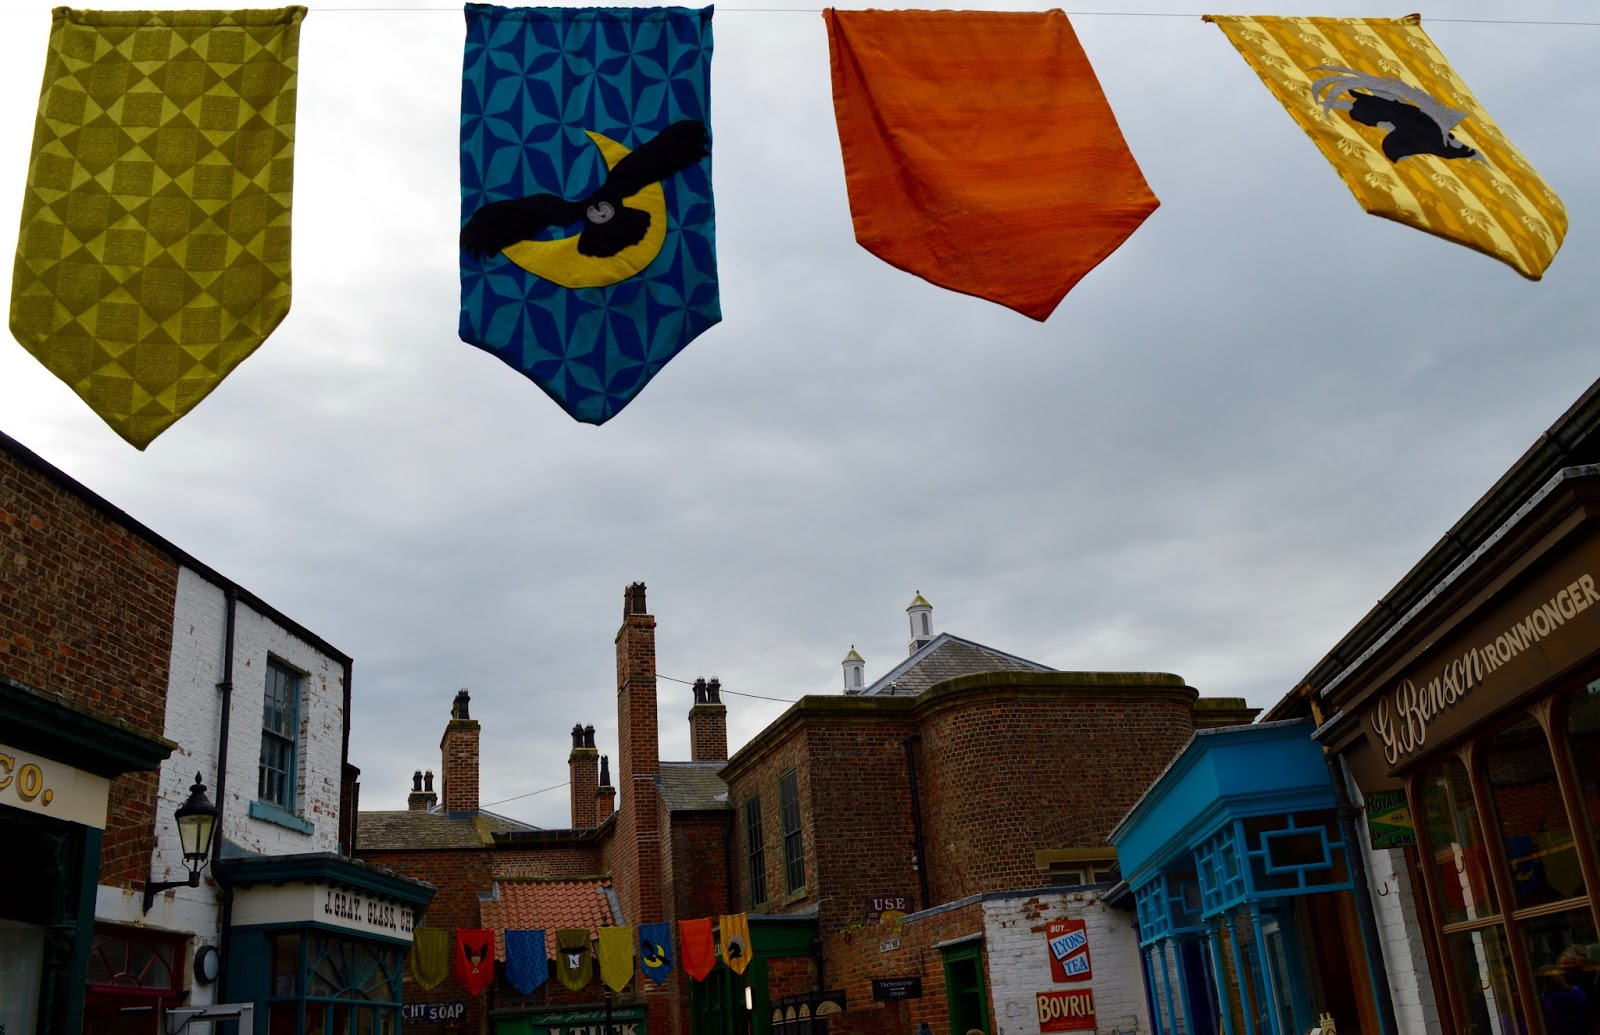 Half Term Hocus Pocus at Preston Park | The North East's very own Diagon Alley - Harry Potter bunting